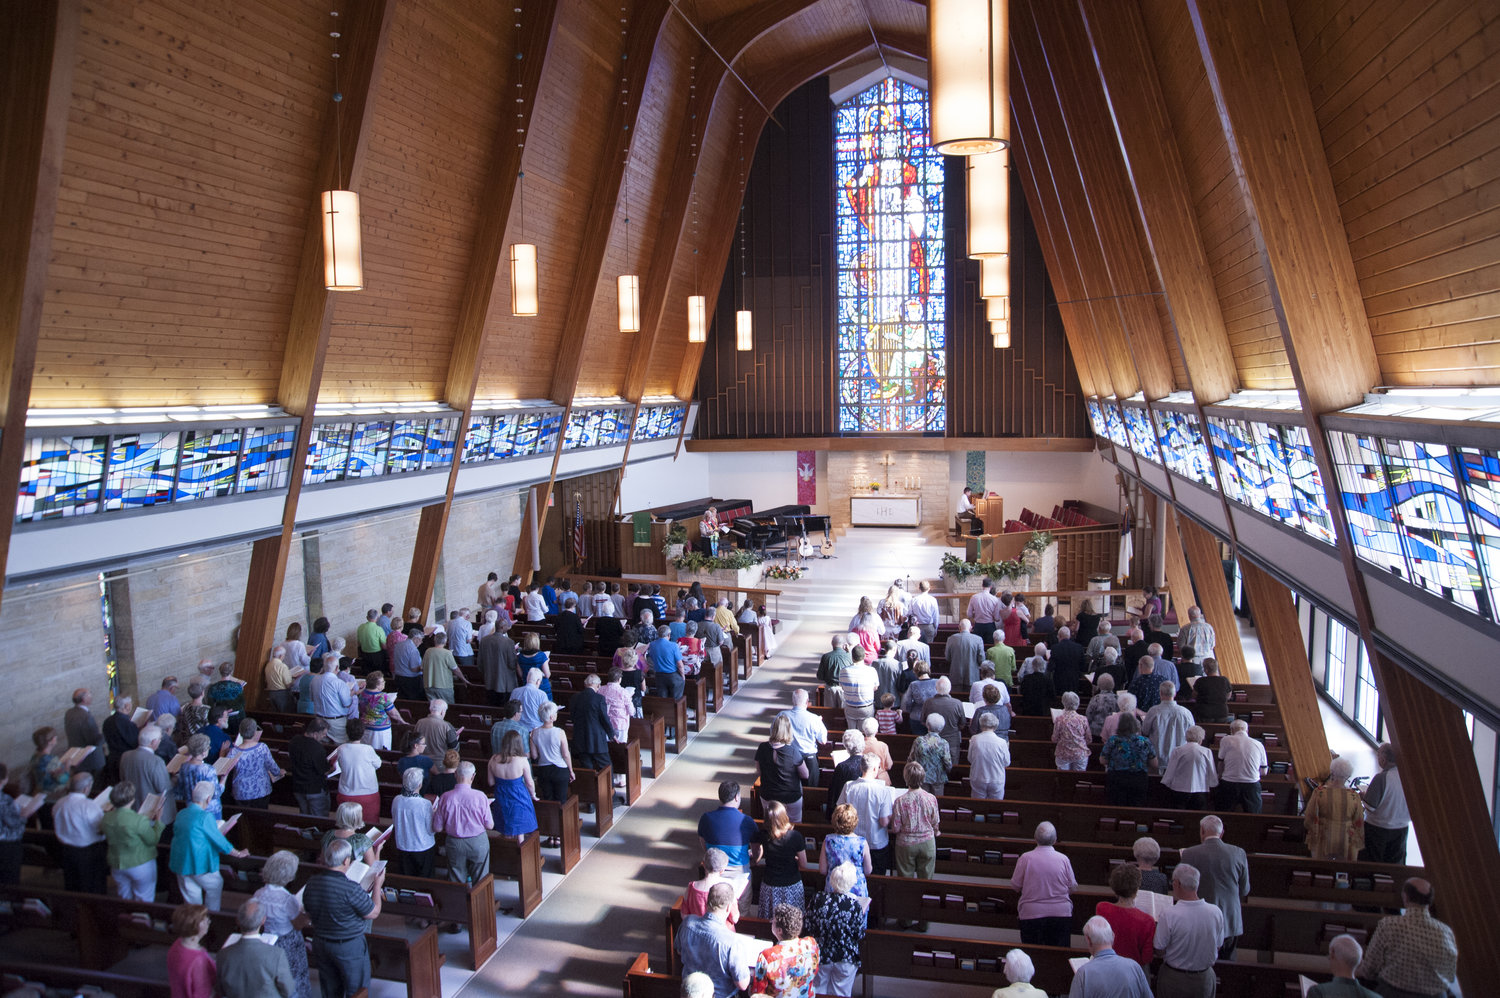 4.+Sunday+Traditions+Service+in+the+Sanctuary[1].jpg